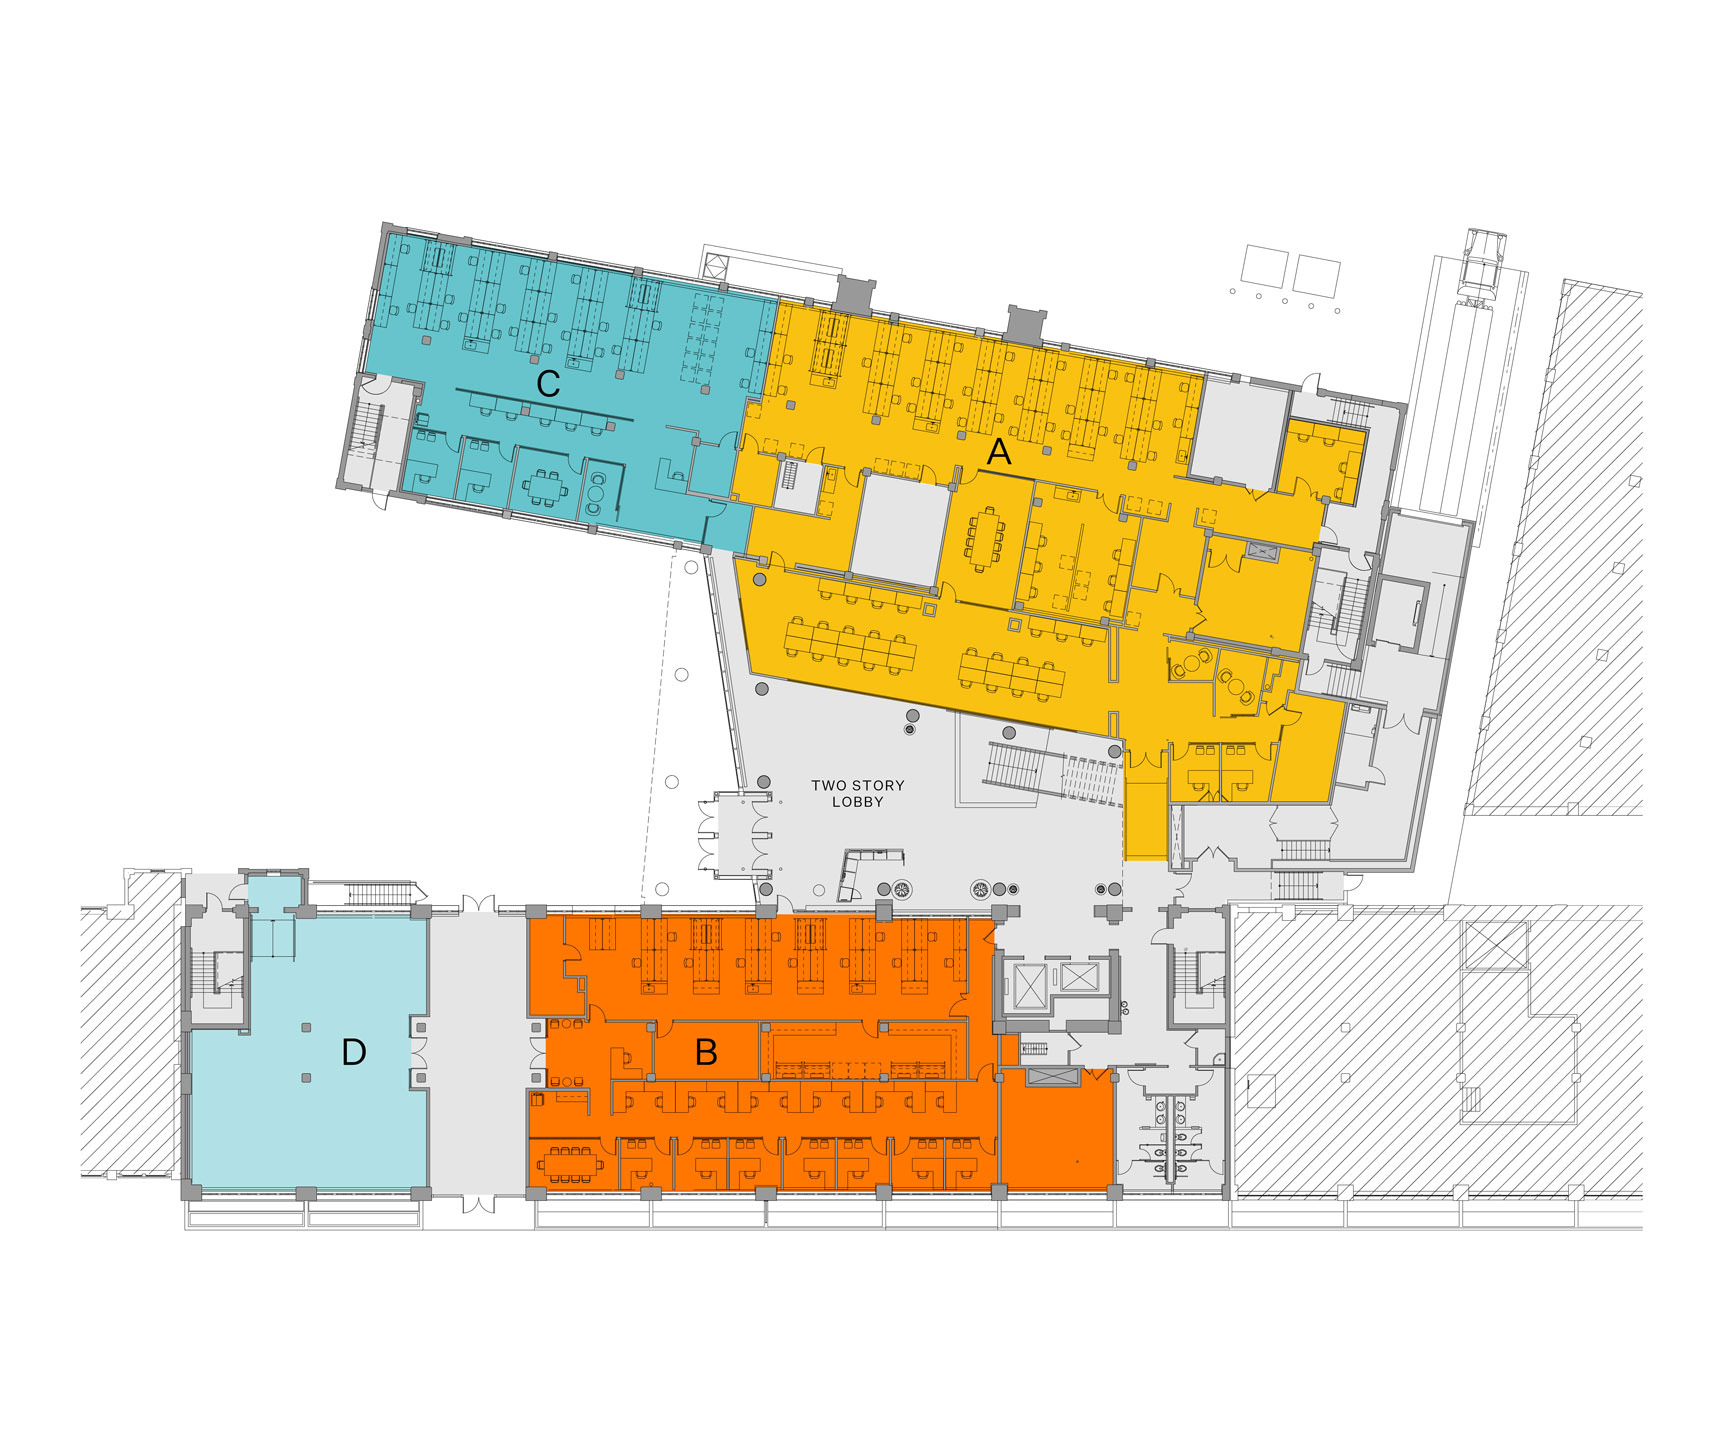 Blueprint layout of Winchester campus level 1